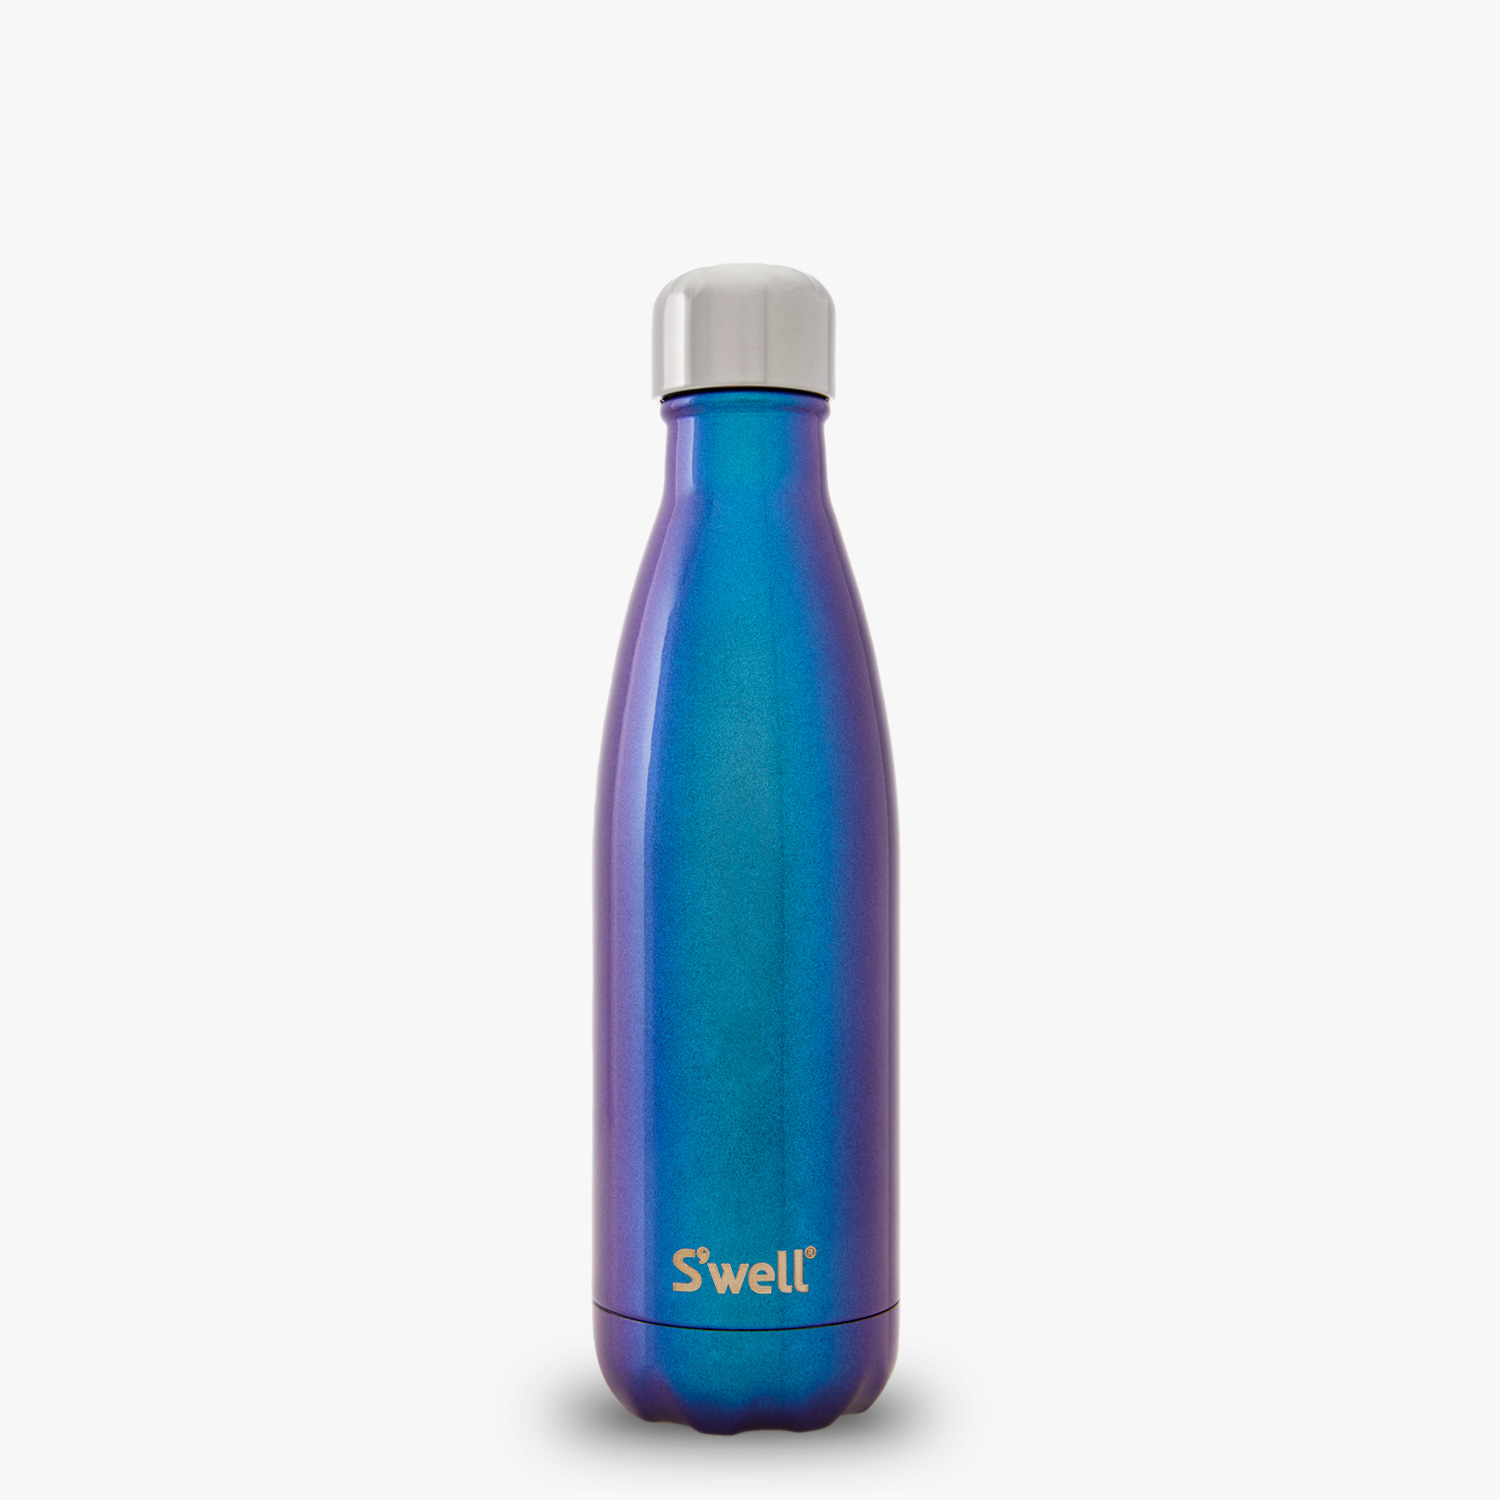 This bottle's the only one that has a textured design built into the bottle to help improve grip — great for when you're using this for sports since this bottle builds up condensation with cold water inside.